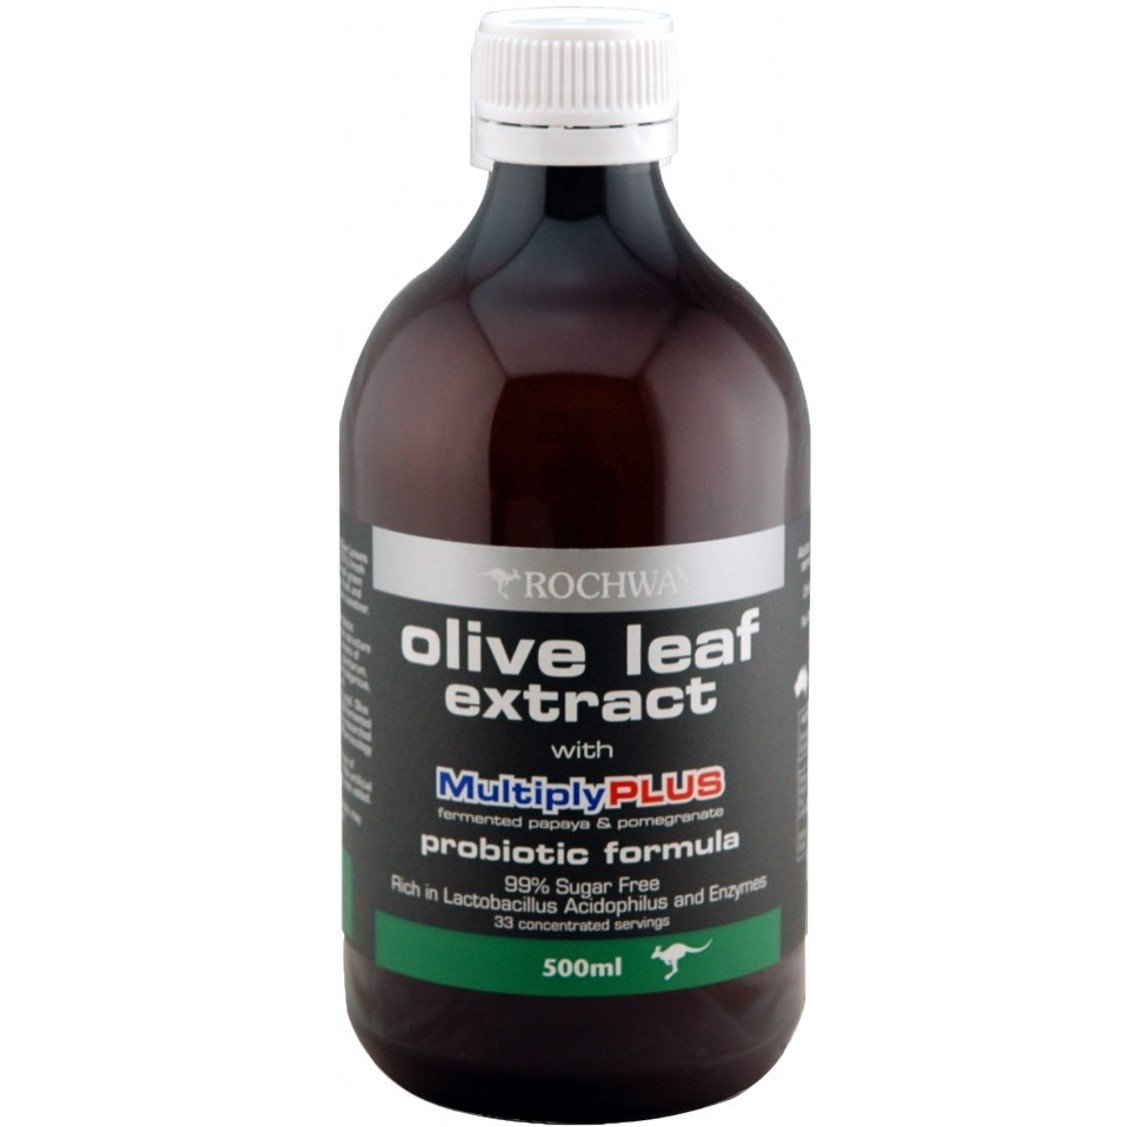 Rochway Olive Leaf Extract with MultiplyPlus, 500ml